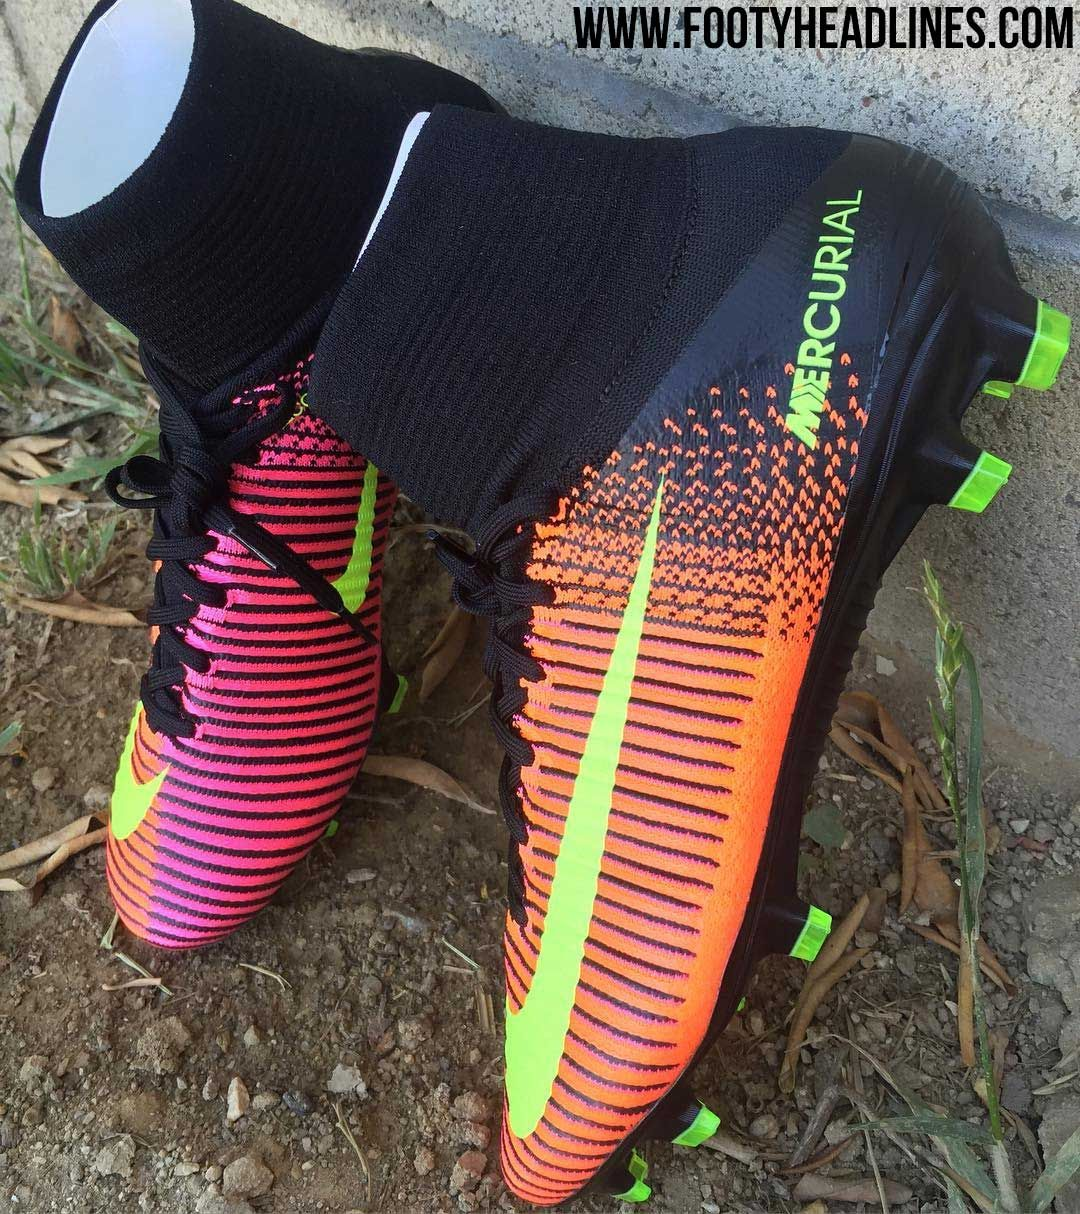 new style a17b0 81b7f The next-gen Nike Mercurial Superfly 2016-2017 Boots introduce a striking  design. The Nike Mercurial Superfly Euro 2016 Boots will be headlined by  Real ...